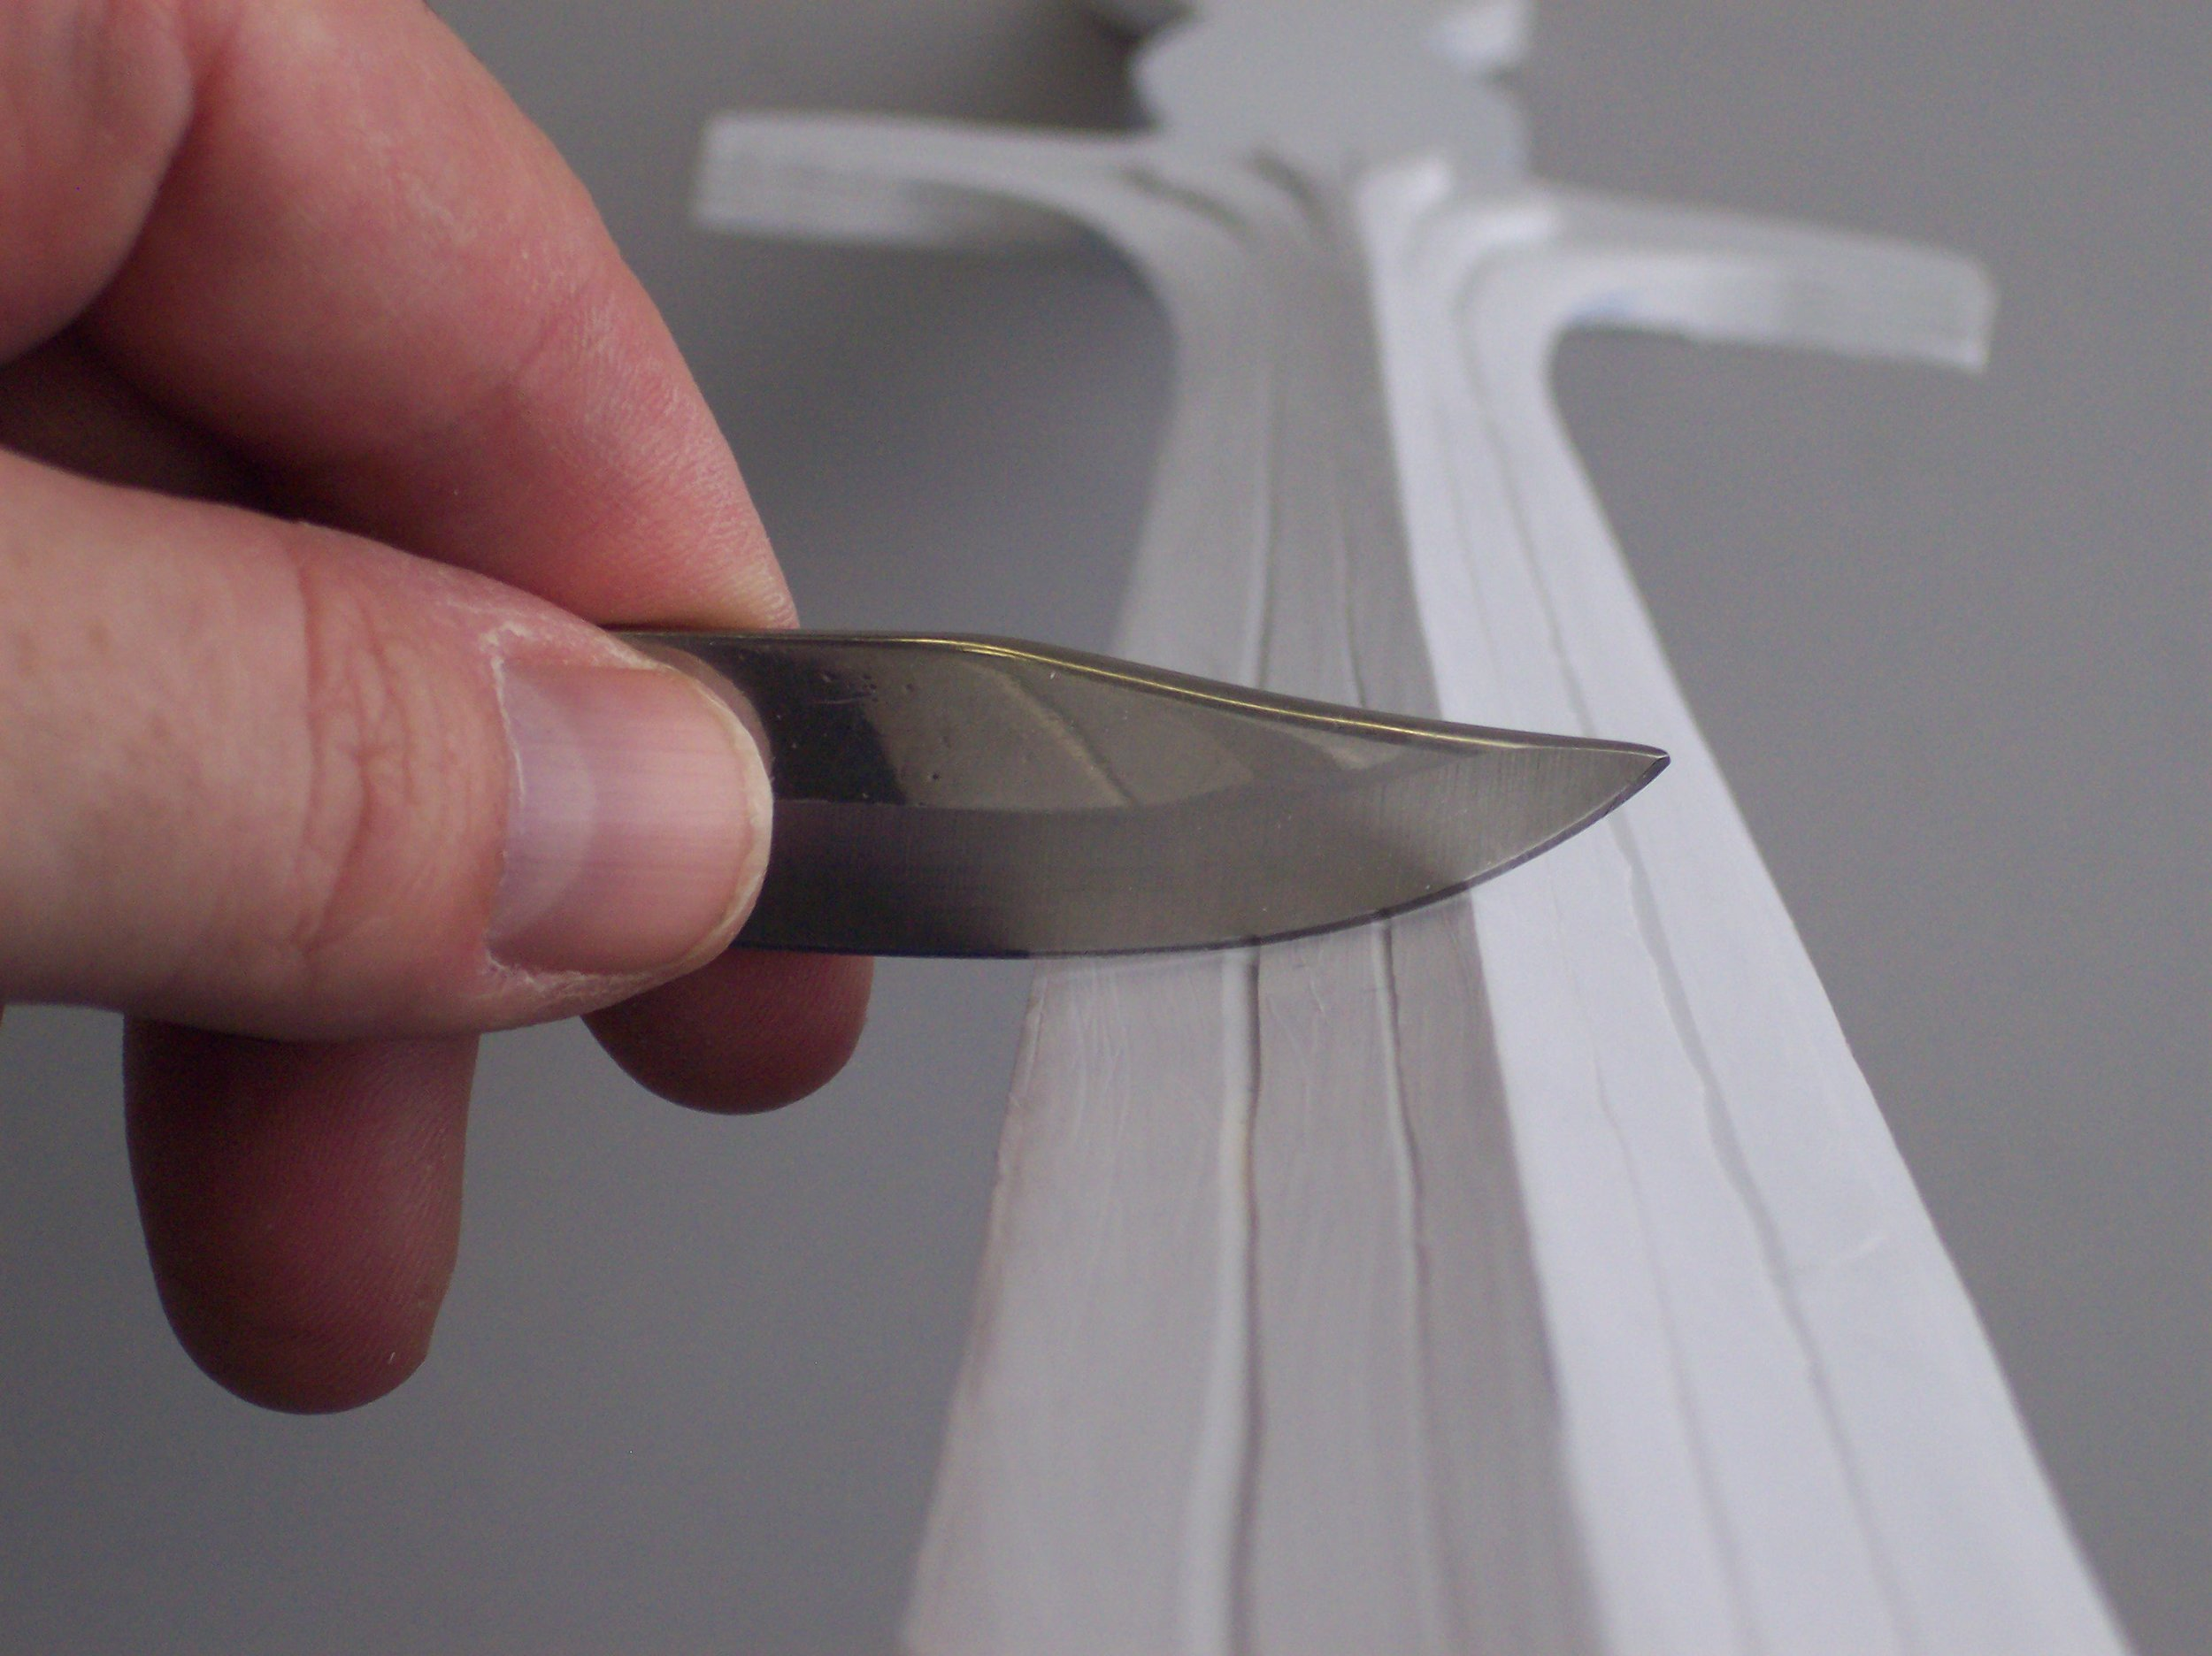 I used the long blade from my Swiss Army knife to shave a blade edge on the sword. Hold the knife's edge PERPENDICULAR to the surface of the plastic and you can shave the plastic into shape. This also works as a alternative to rough sanding.